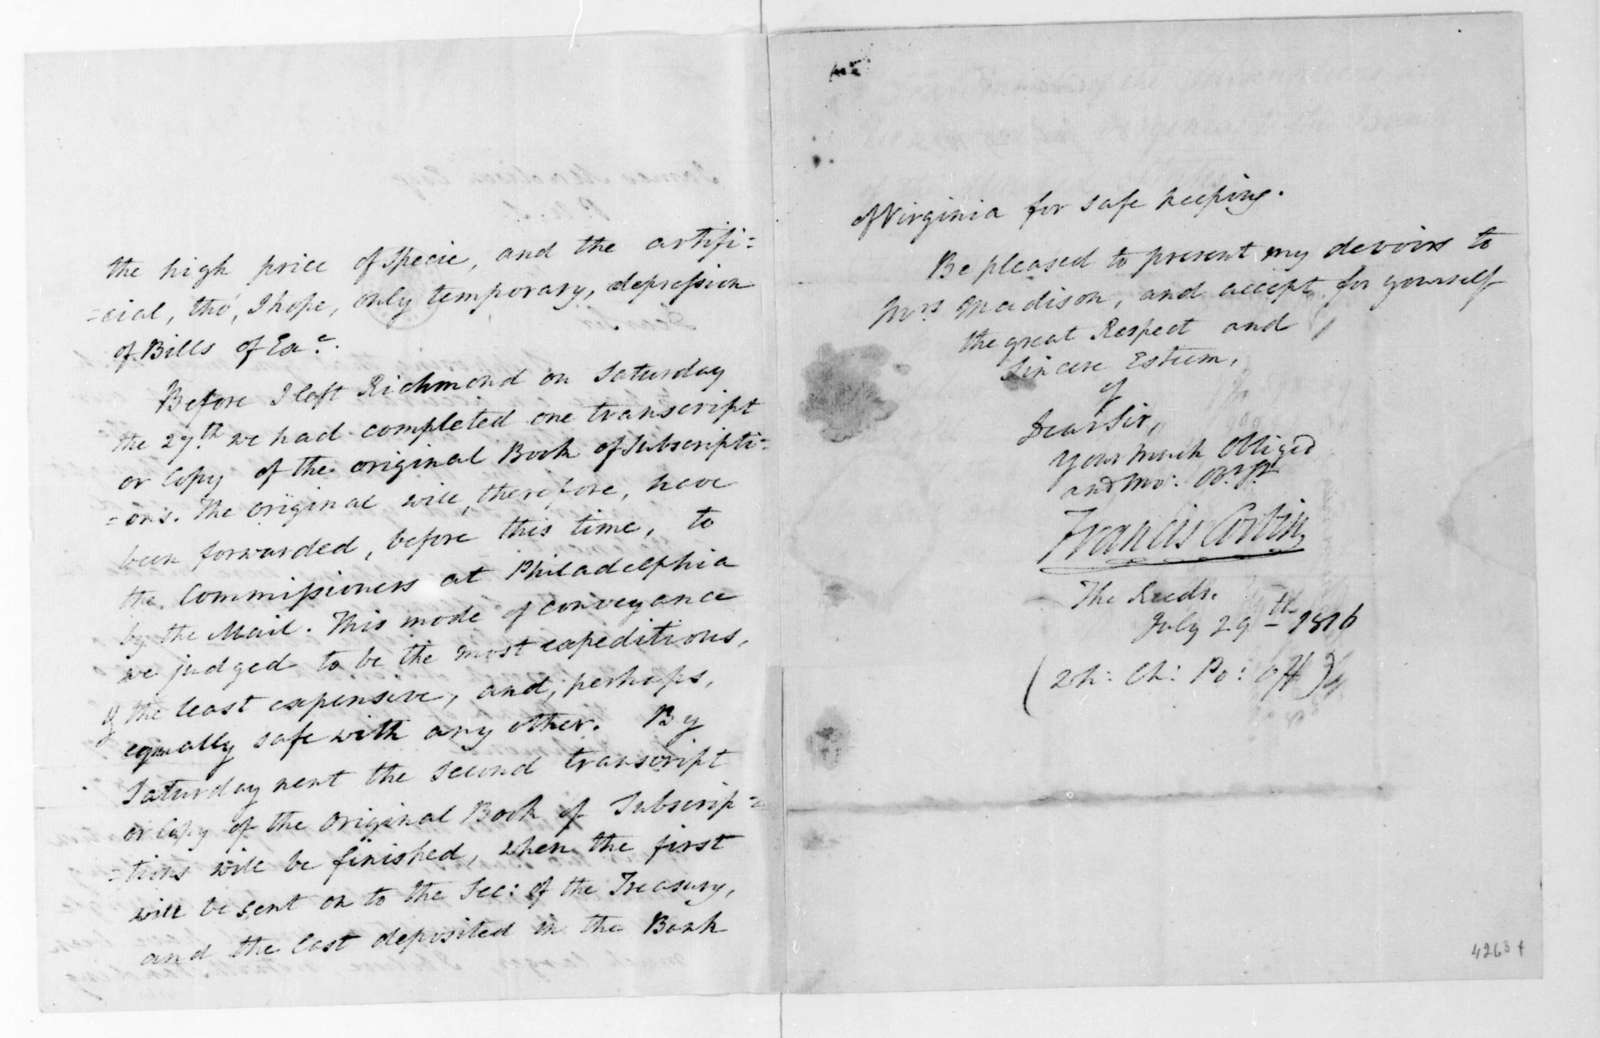 Francis Corbin to James Madison, July 29, 1816. Includes a statement from the Bank of United States.